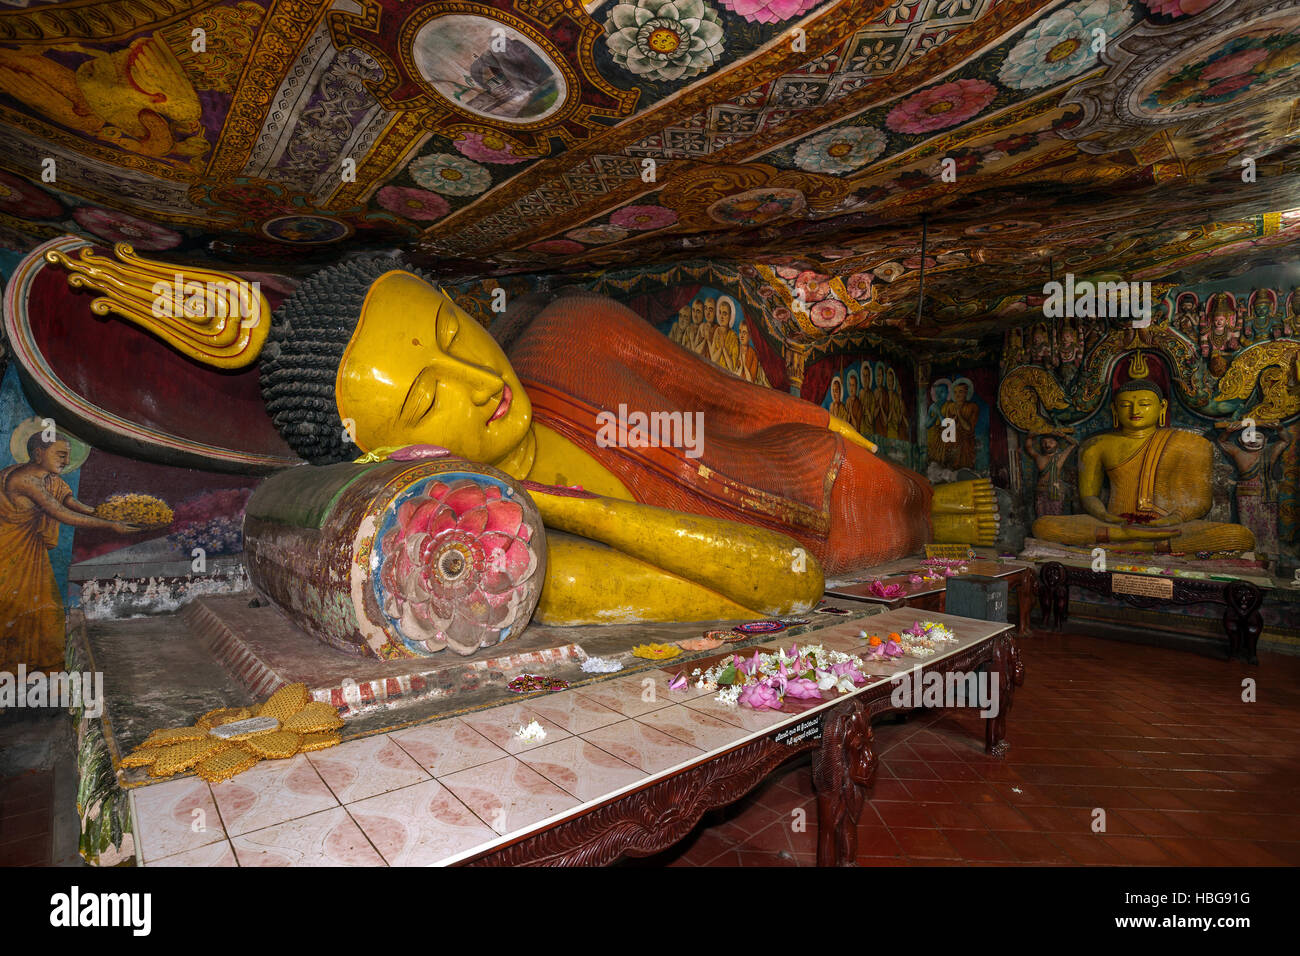 Reclining Buddha statue and painted ceilings, Aluvihara Rock Cave Temple, Central Province, Sri Lanka - Stock Image